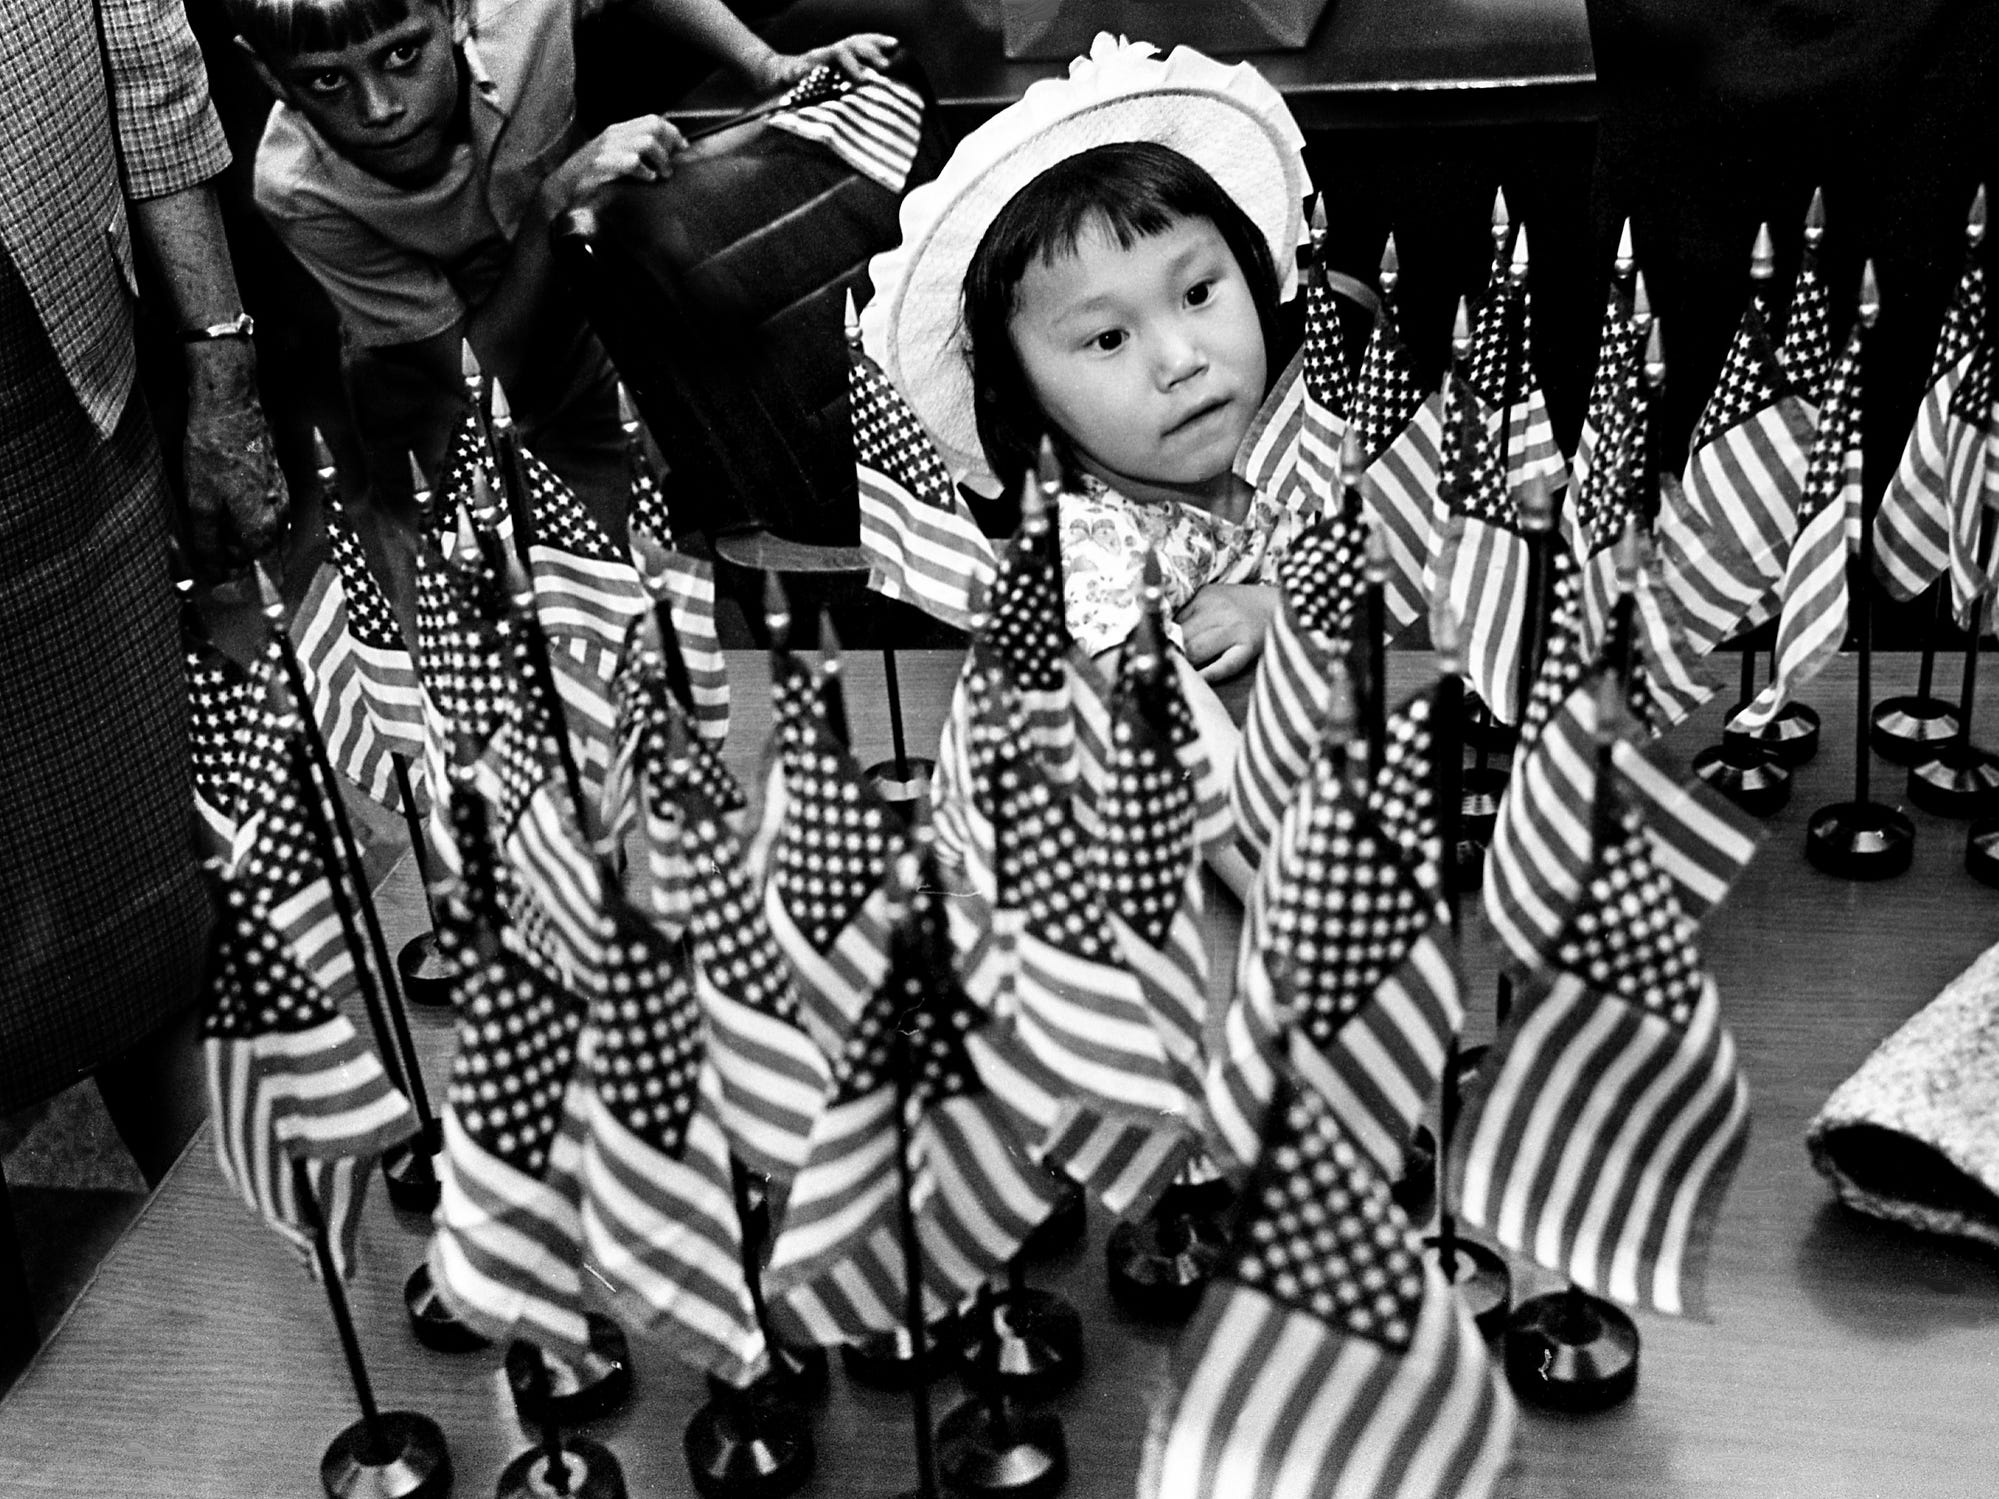 Deborah Herbert, once a Korean orphan, is surrounded by miniature flags of her newly adopted country after she was among the 60 members of the class of immigrants who became naturalized American citizens in Nashville on April 17, 1968. Deborah, 4½, is the adopted daughter of the Rev. Douglas G. Herbert, chaplain at Sewart Air Force Base, and his wife, Florence.